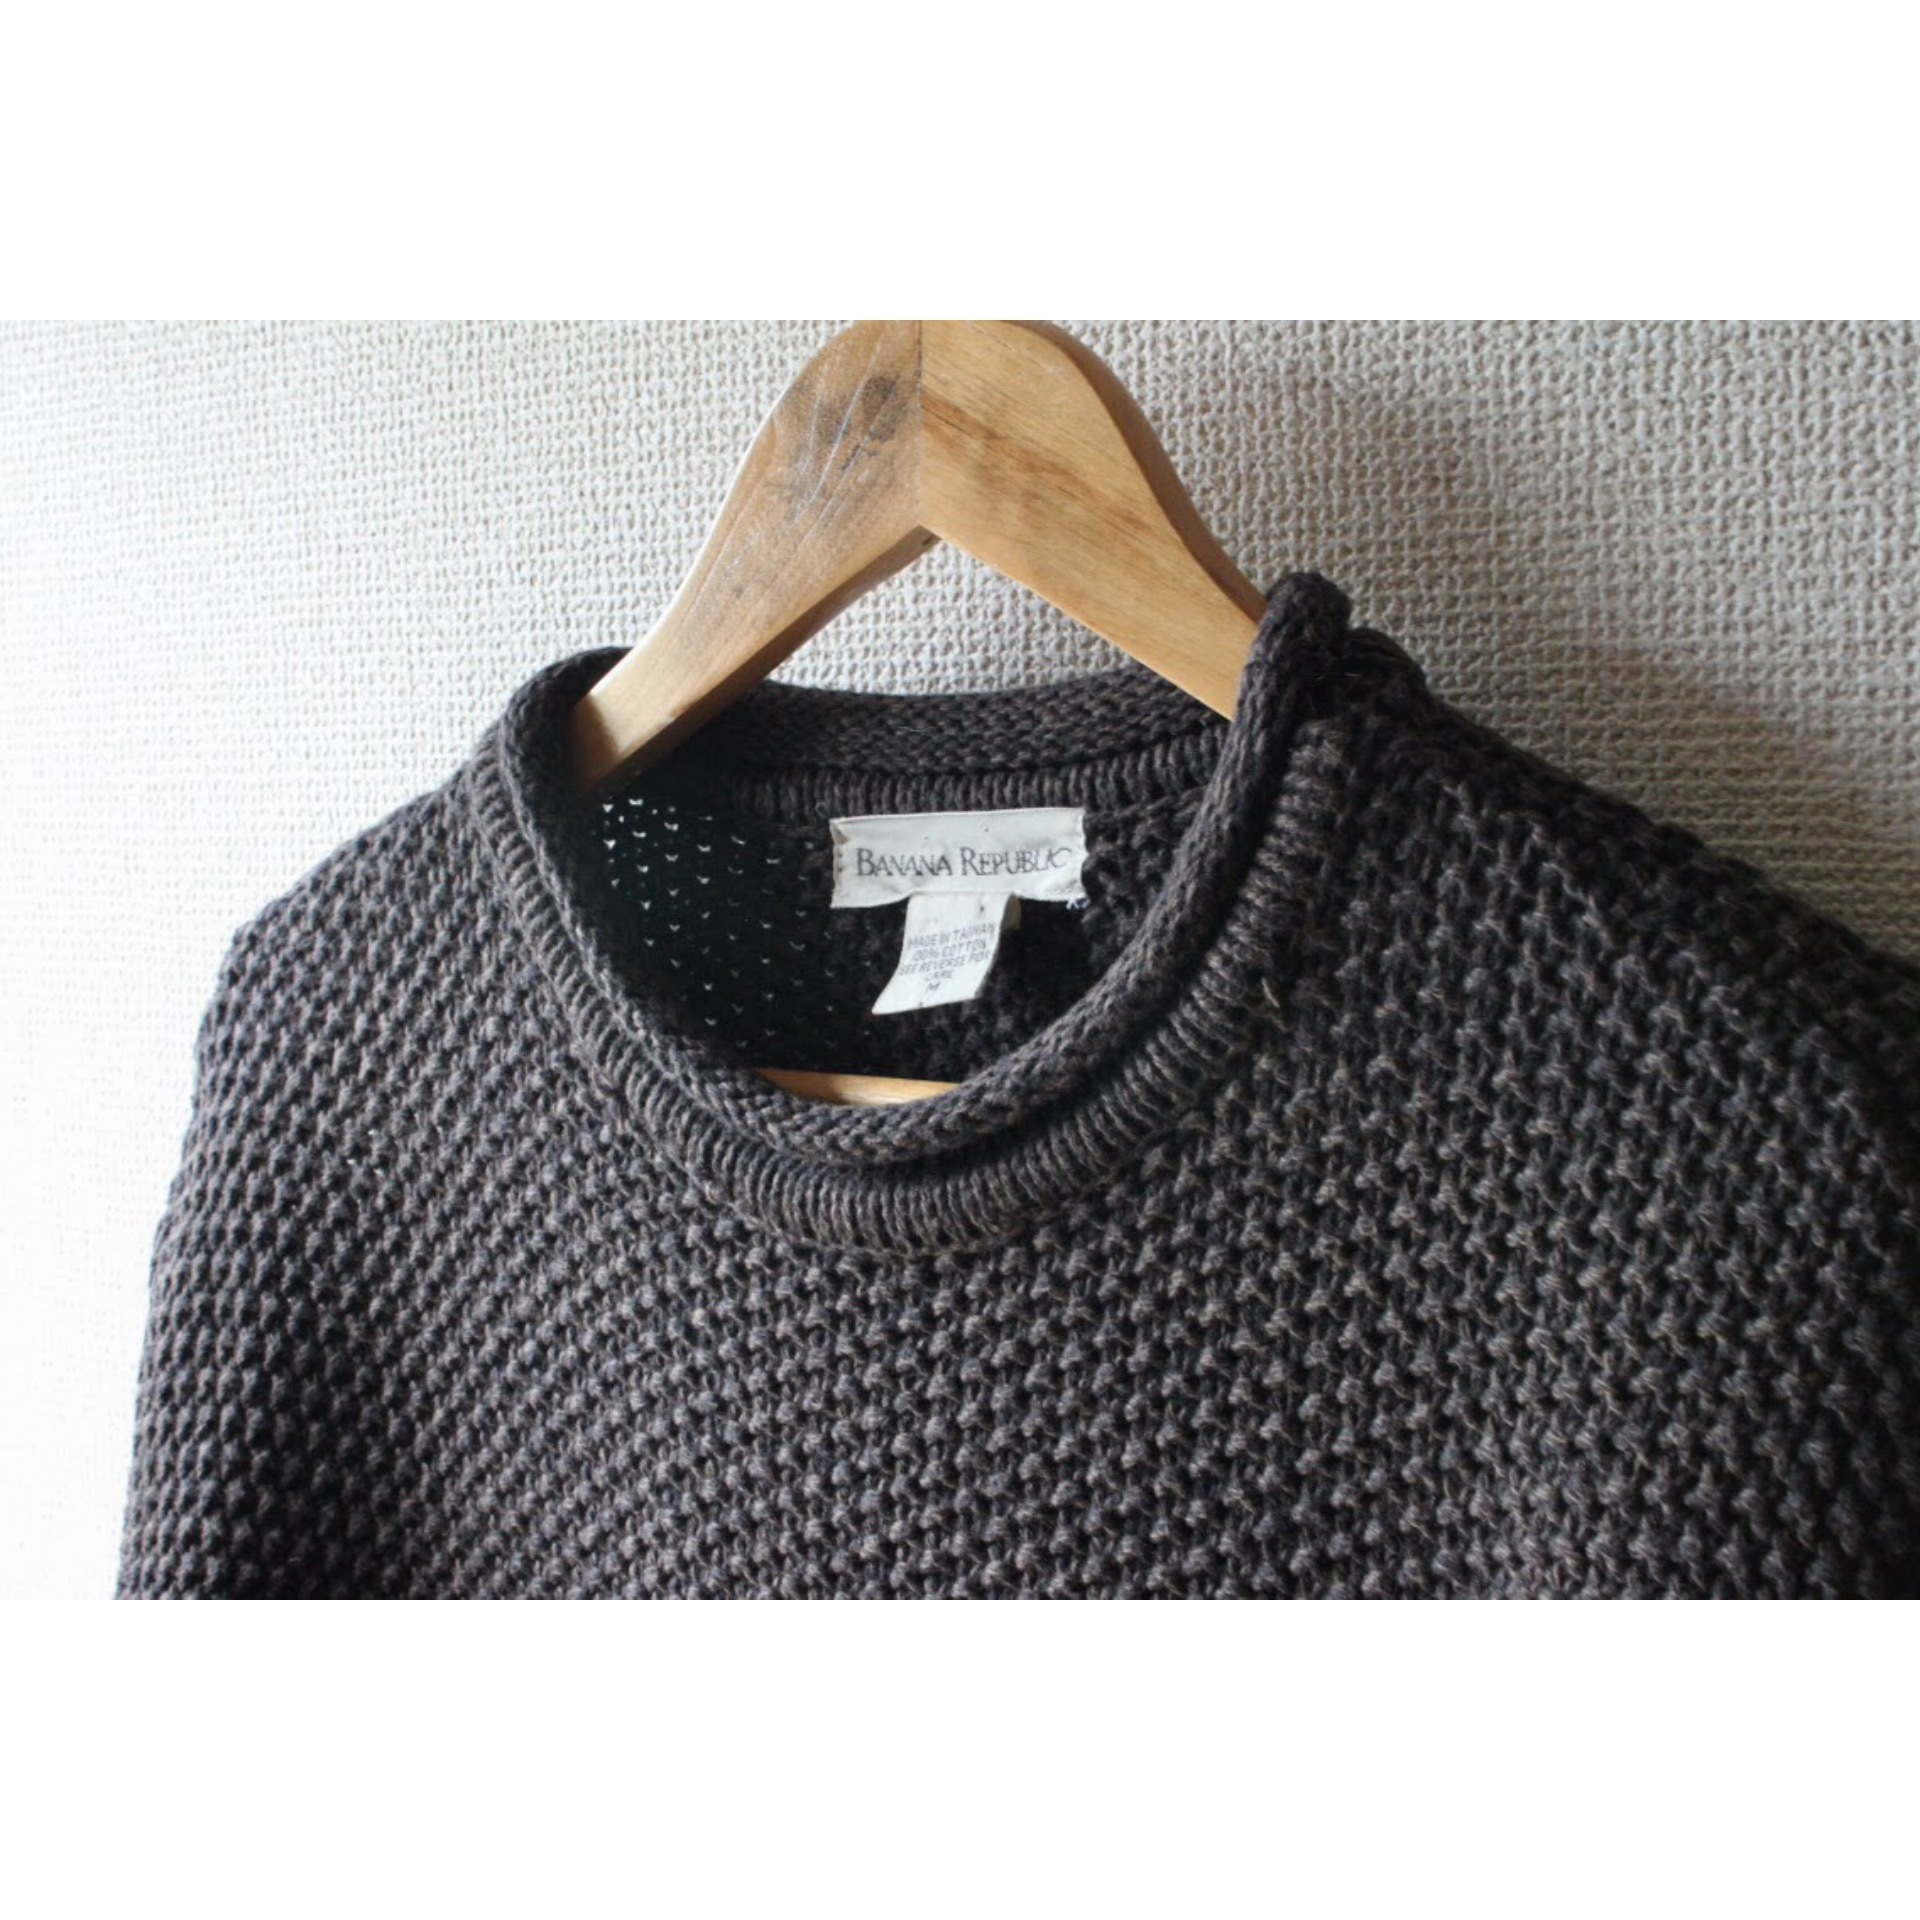 Vintage cotton knit sweater by BANANA REPUBRIC